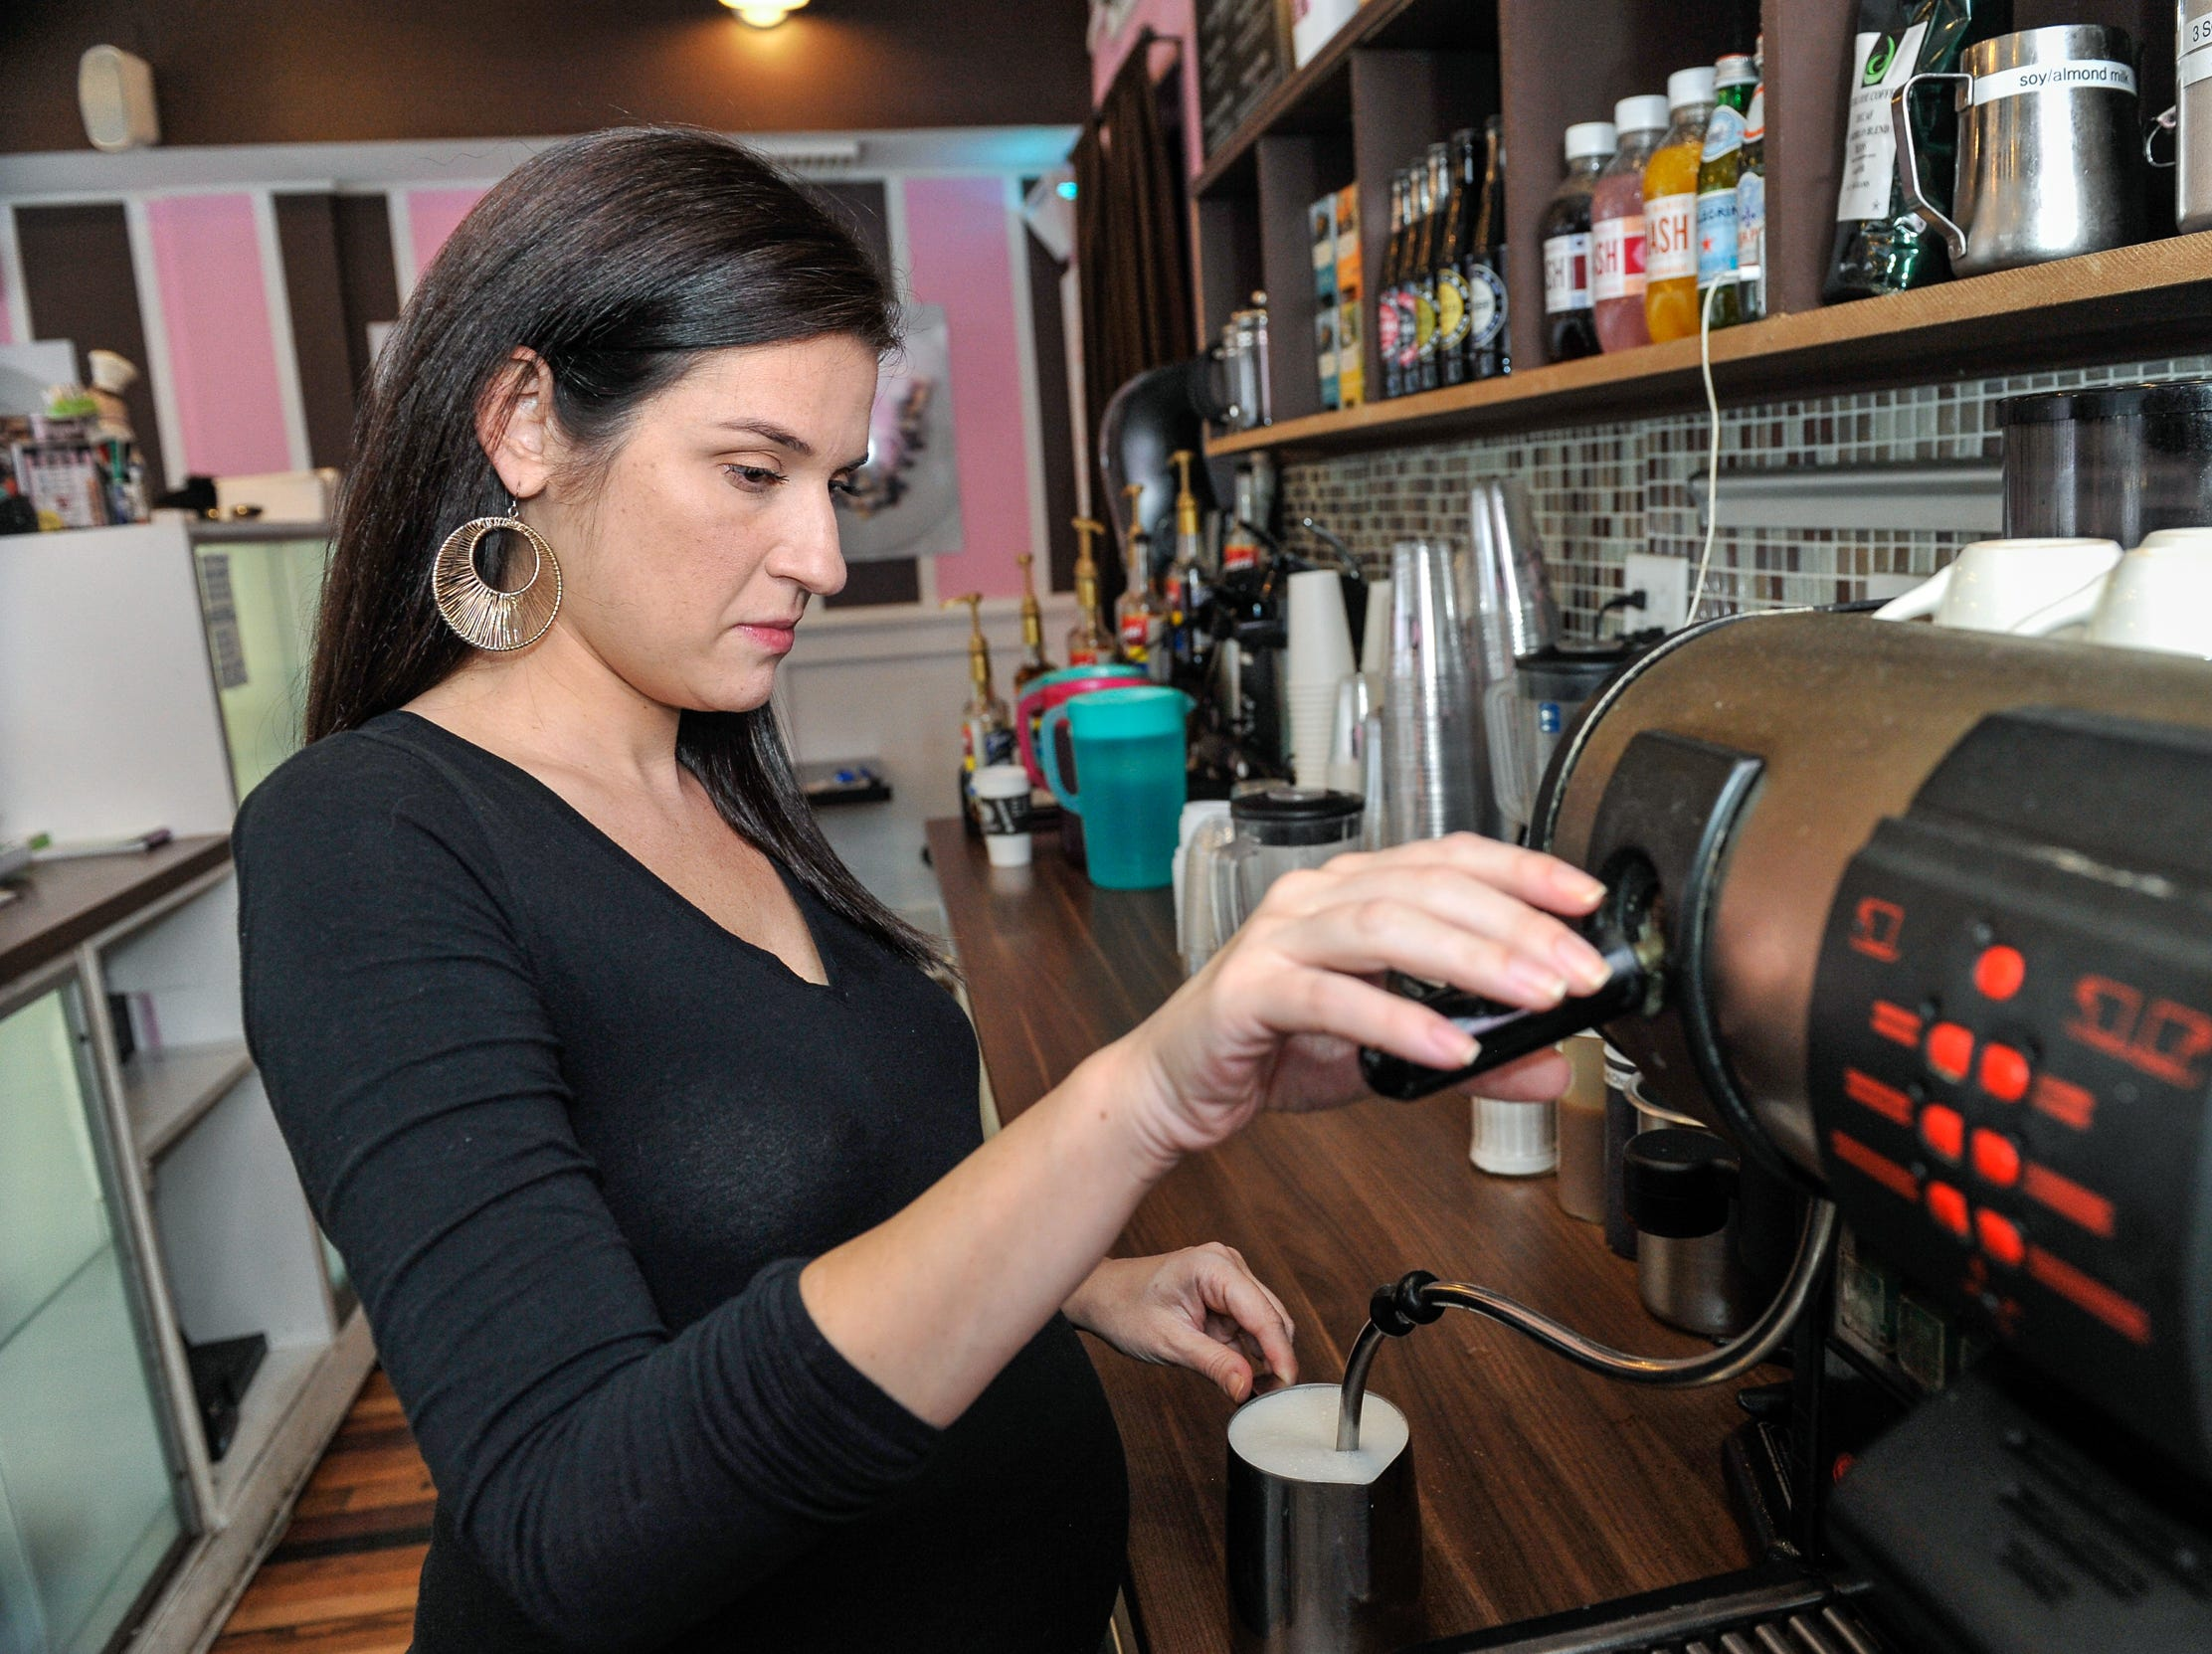 Erica Lieberman, pictured in a file photo, owns Whipped Creperie in Red Bank. The business is reopening a few doors down under the name The Crepe Place.